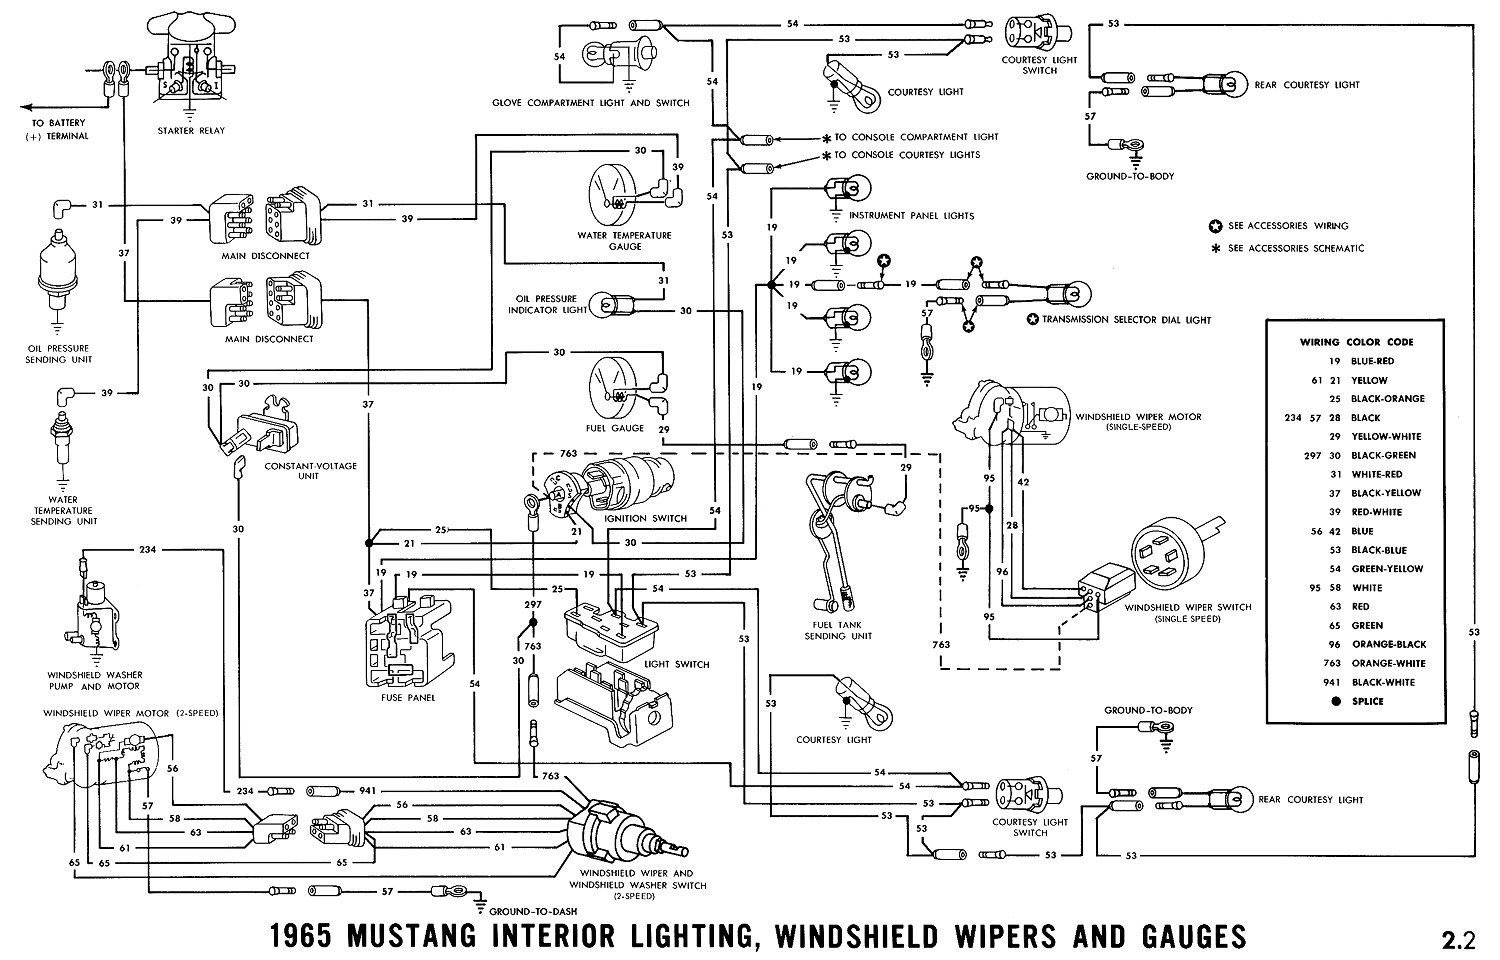 1966 Mustang Wiring Kit Electrical Diagram Schematics Here Is The Picture Of Completed Harness Including 1965 Diagrams Average Joe Restoration 1969